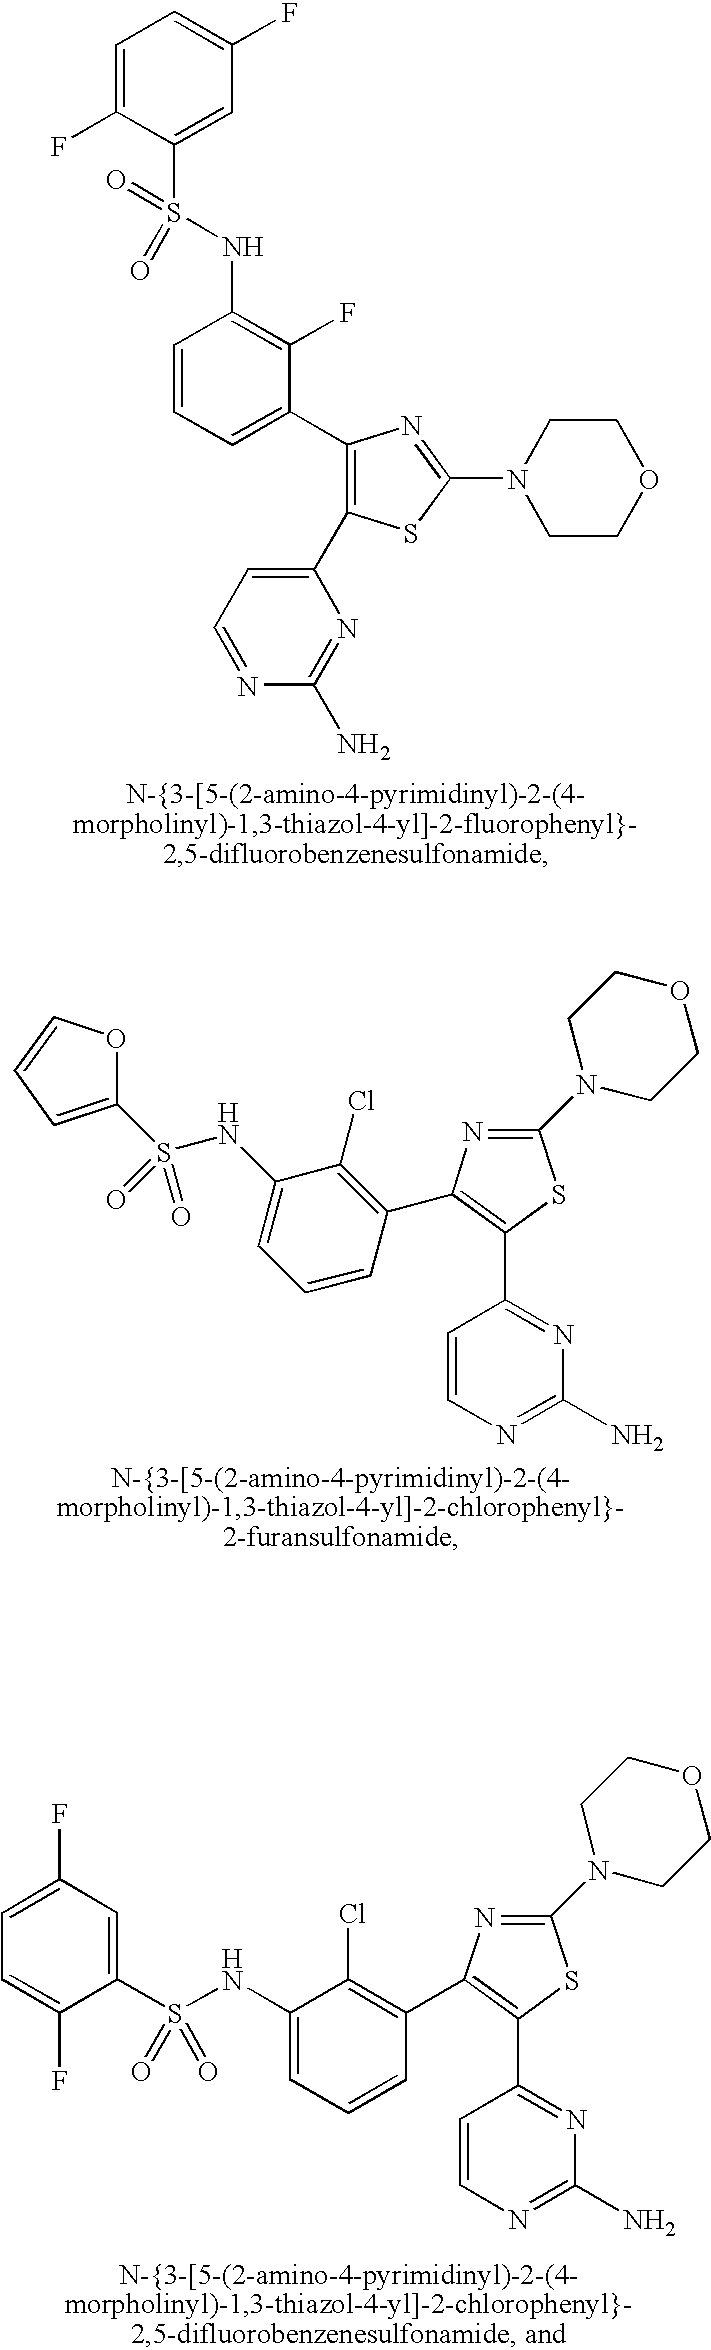 Us20090298815a1 Benzene Sulfonamide Thiazole And Oxazole Compounds Bolens G174 Wiring Diagram Figure 20091203 C00013